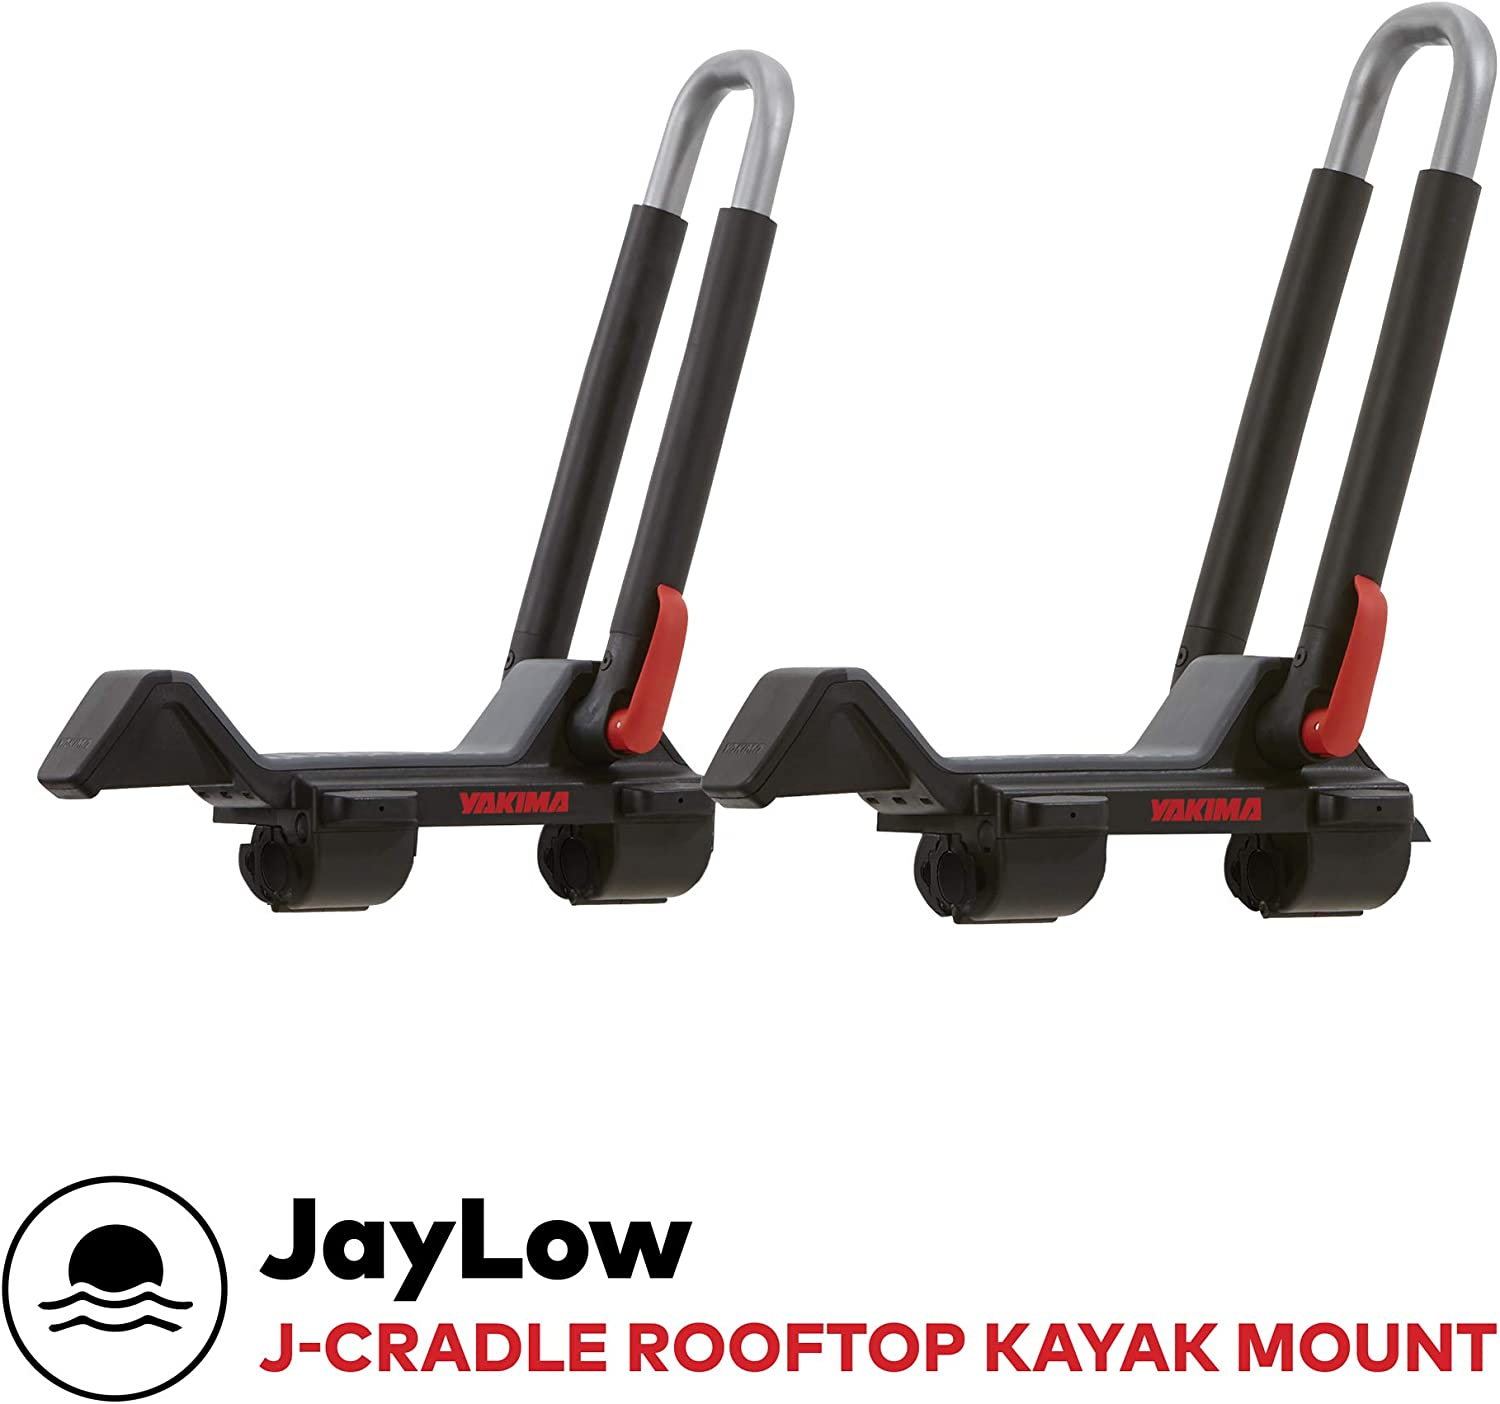 JayLow J-Cradle Rooftop Kayak Mount